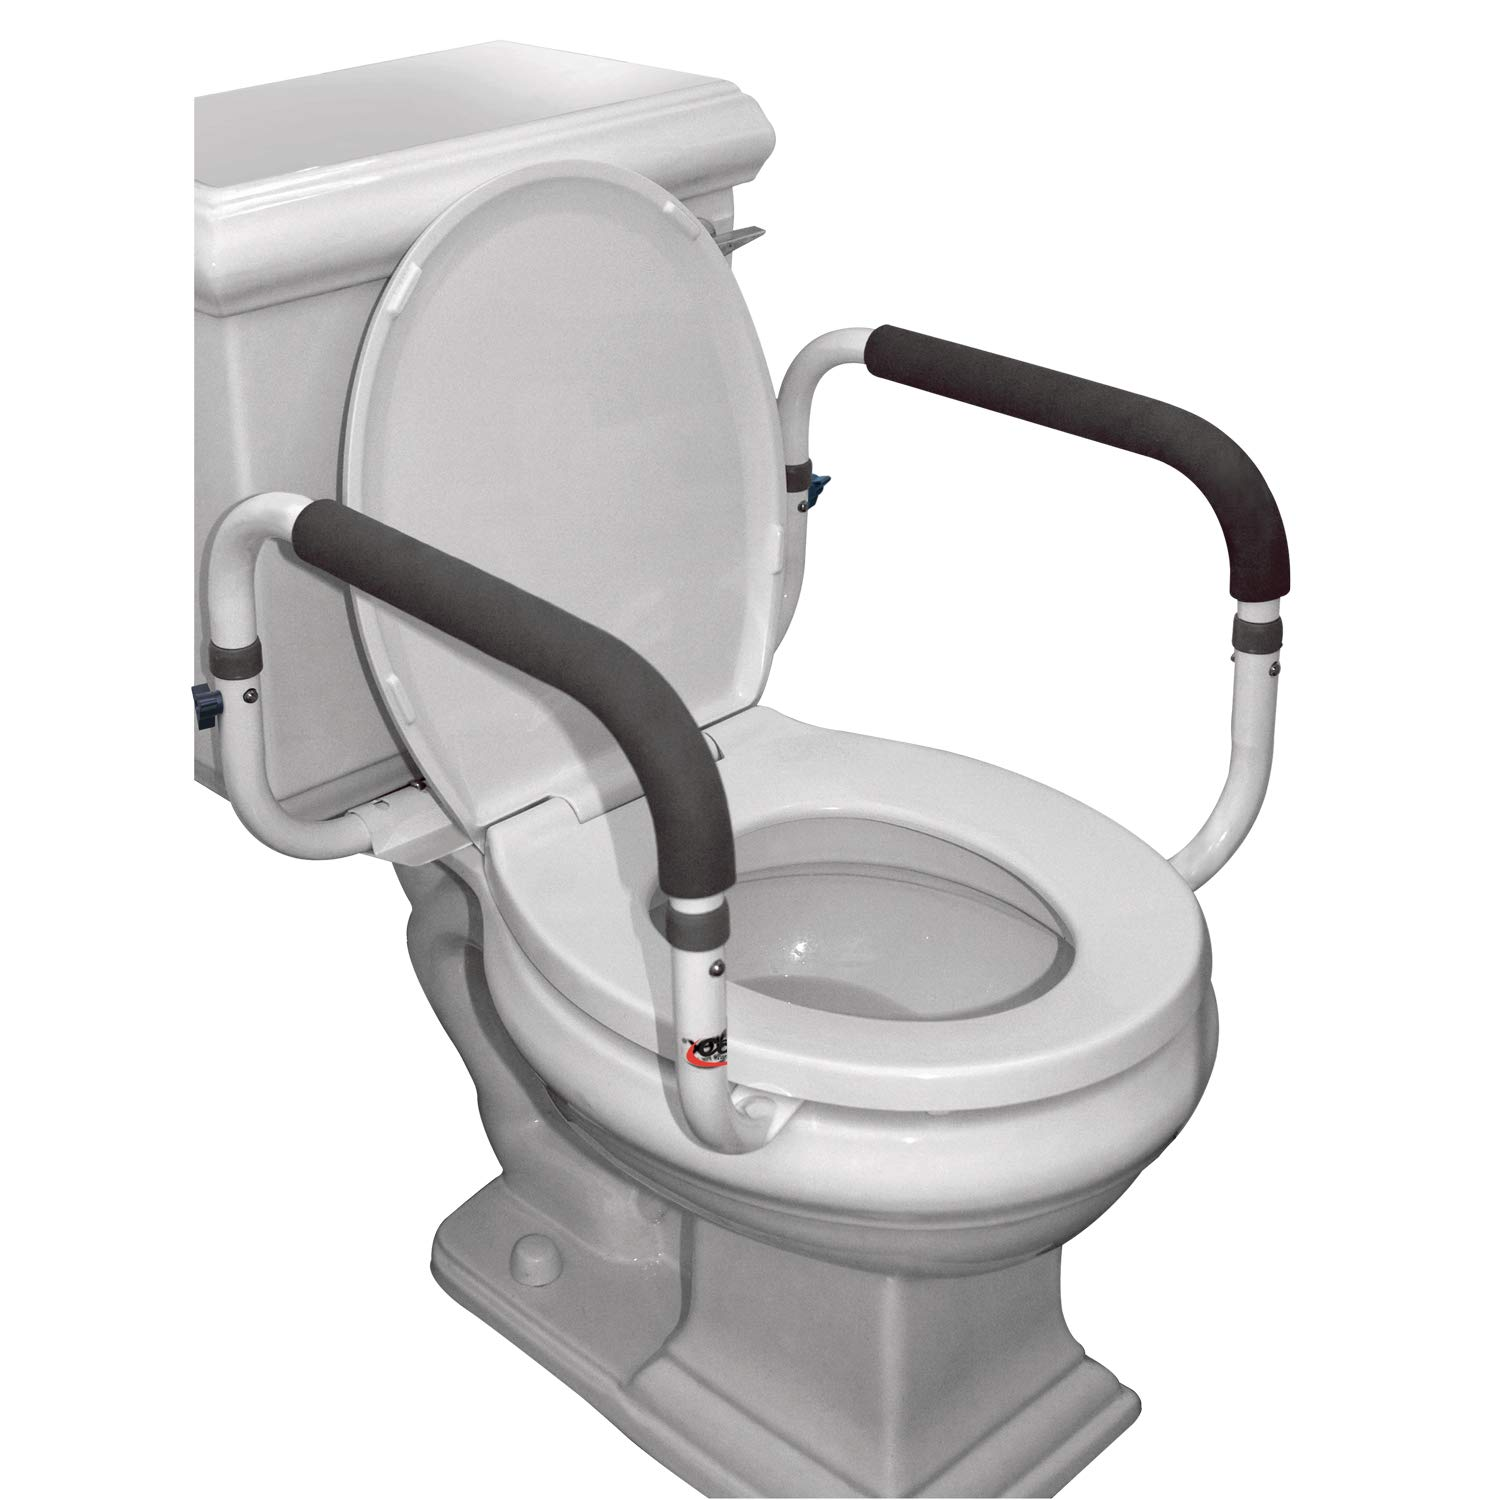 9324ee80e13 Amazon.com  Carex Toilet Safety Frame - Toilet Safety Rails With Adjustable  Width - Toilet Rails For Elderly